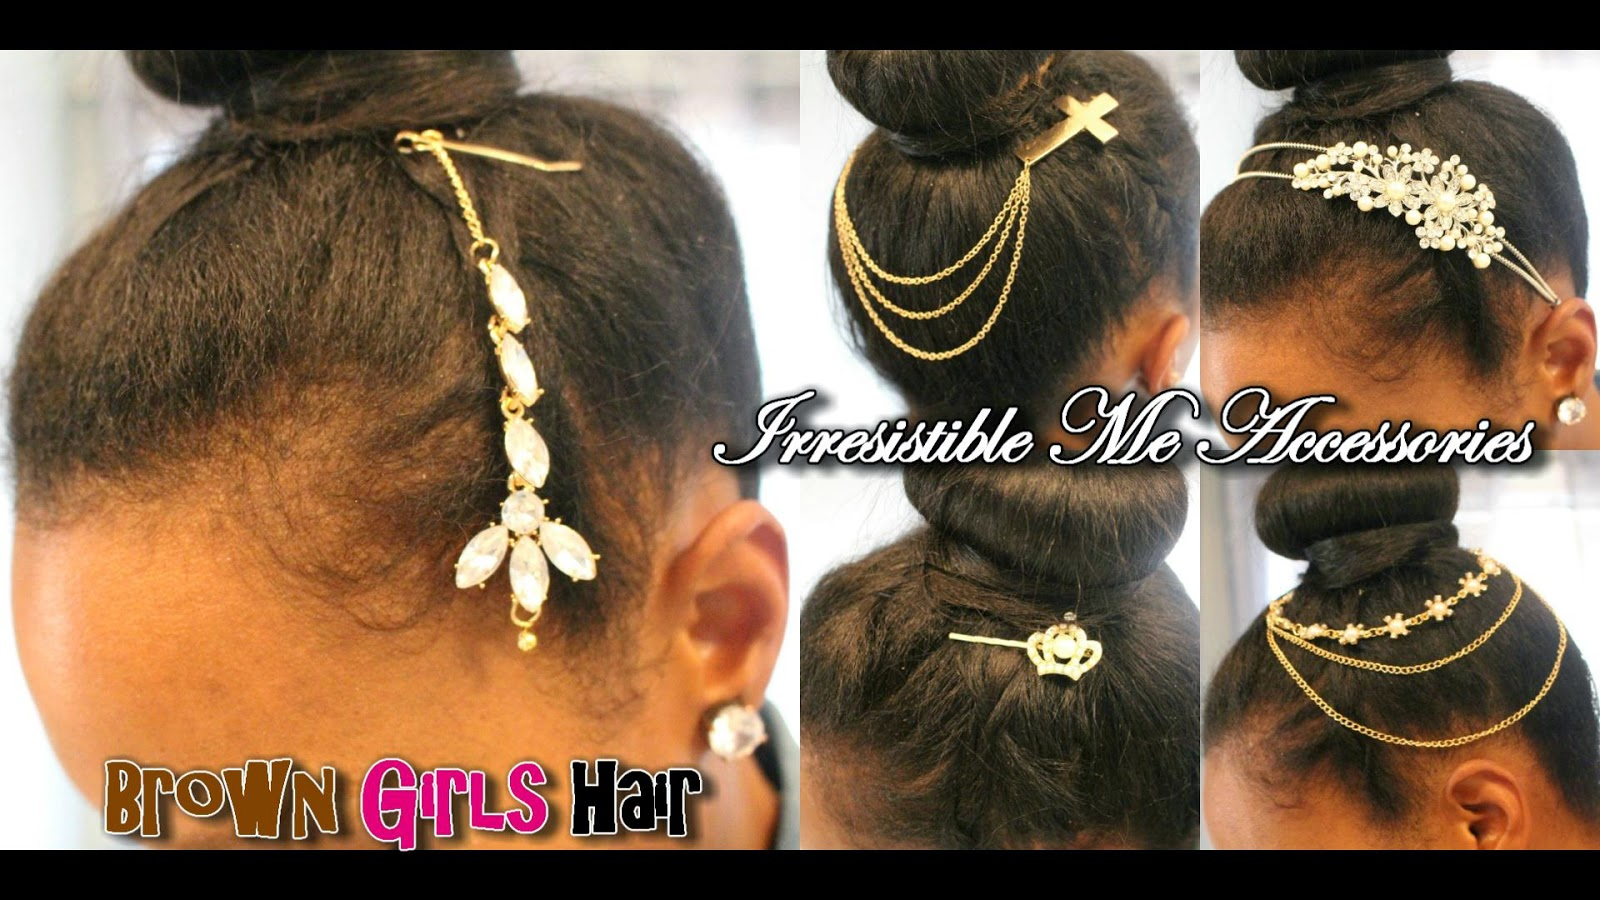 hair, accessories, jewelry, natural, updo, black, women